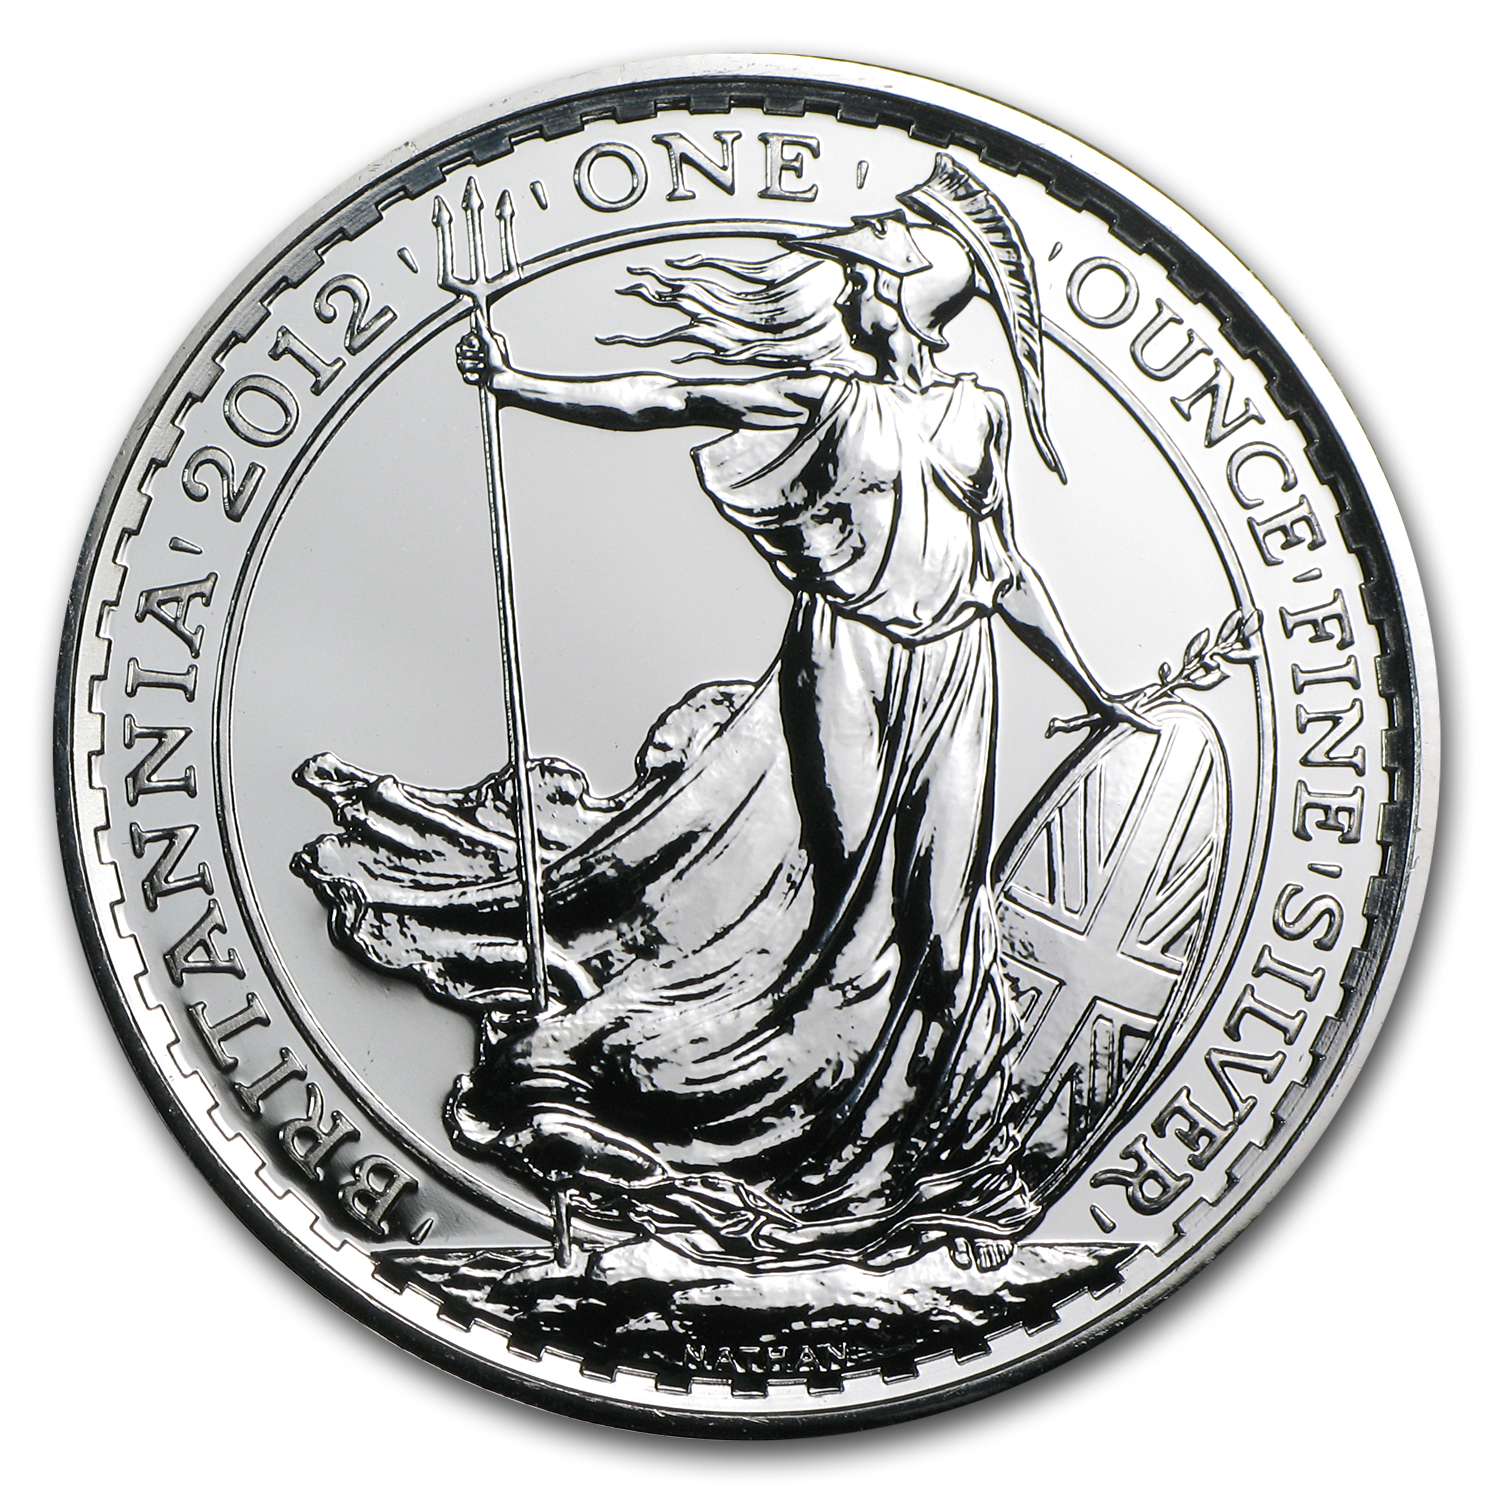 2012 Great Britain 1 oz Silver Britannia BU